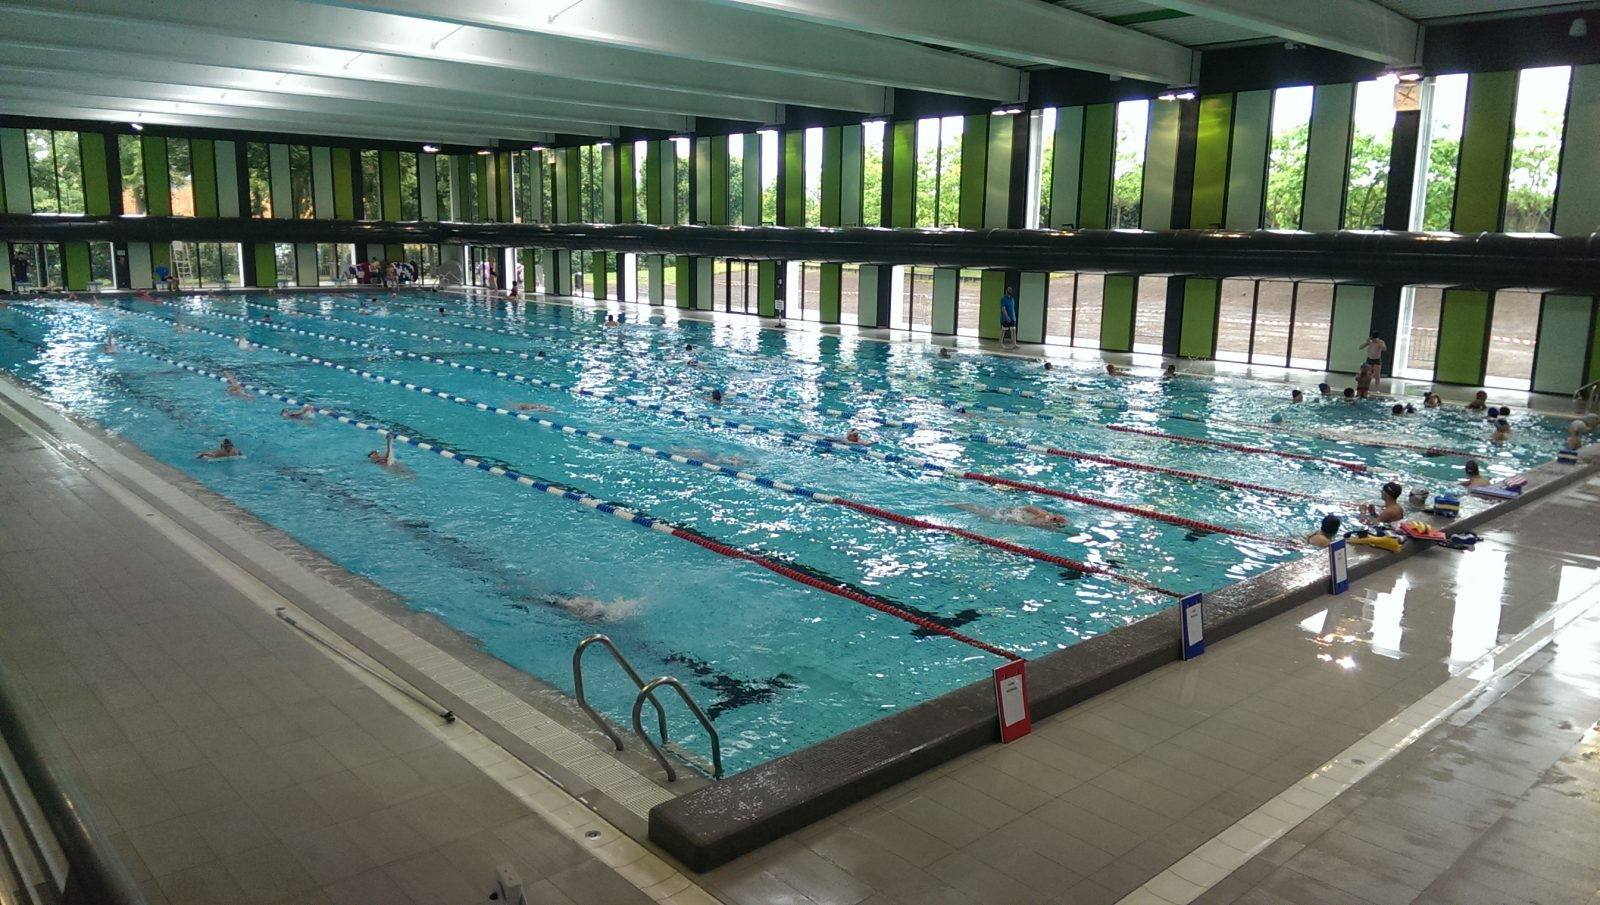 Piscine belletanche metz tarif piscine thionville for Tarif piscine